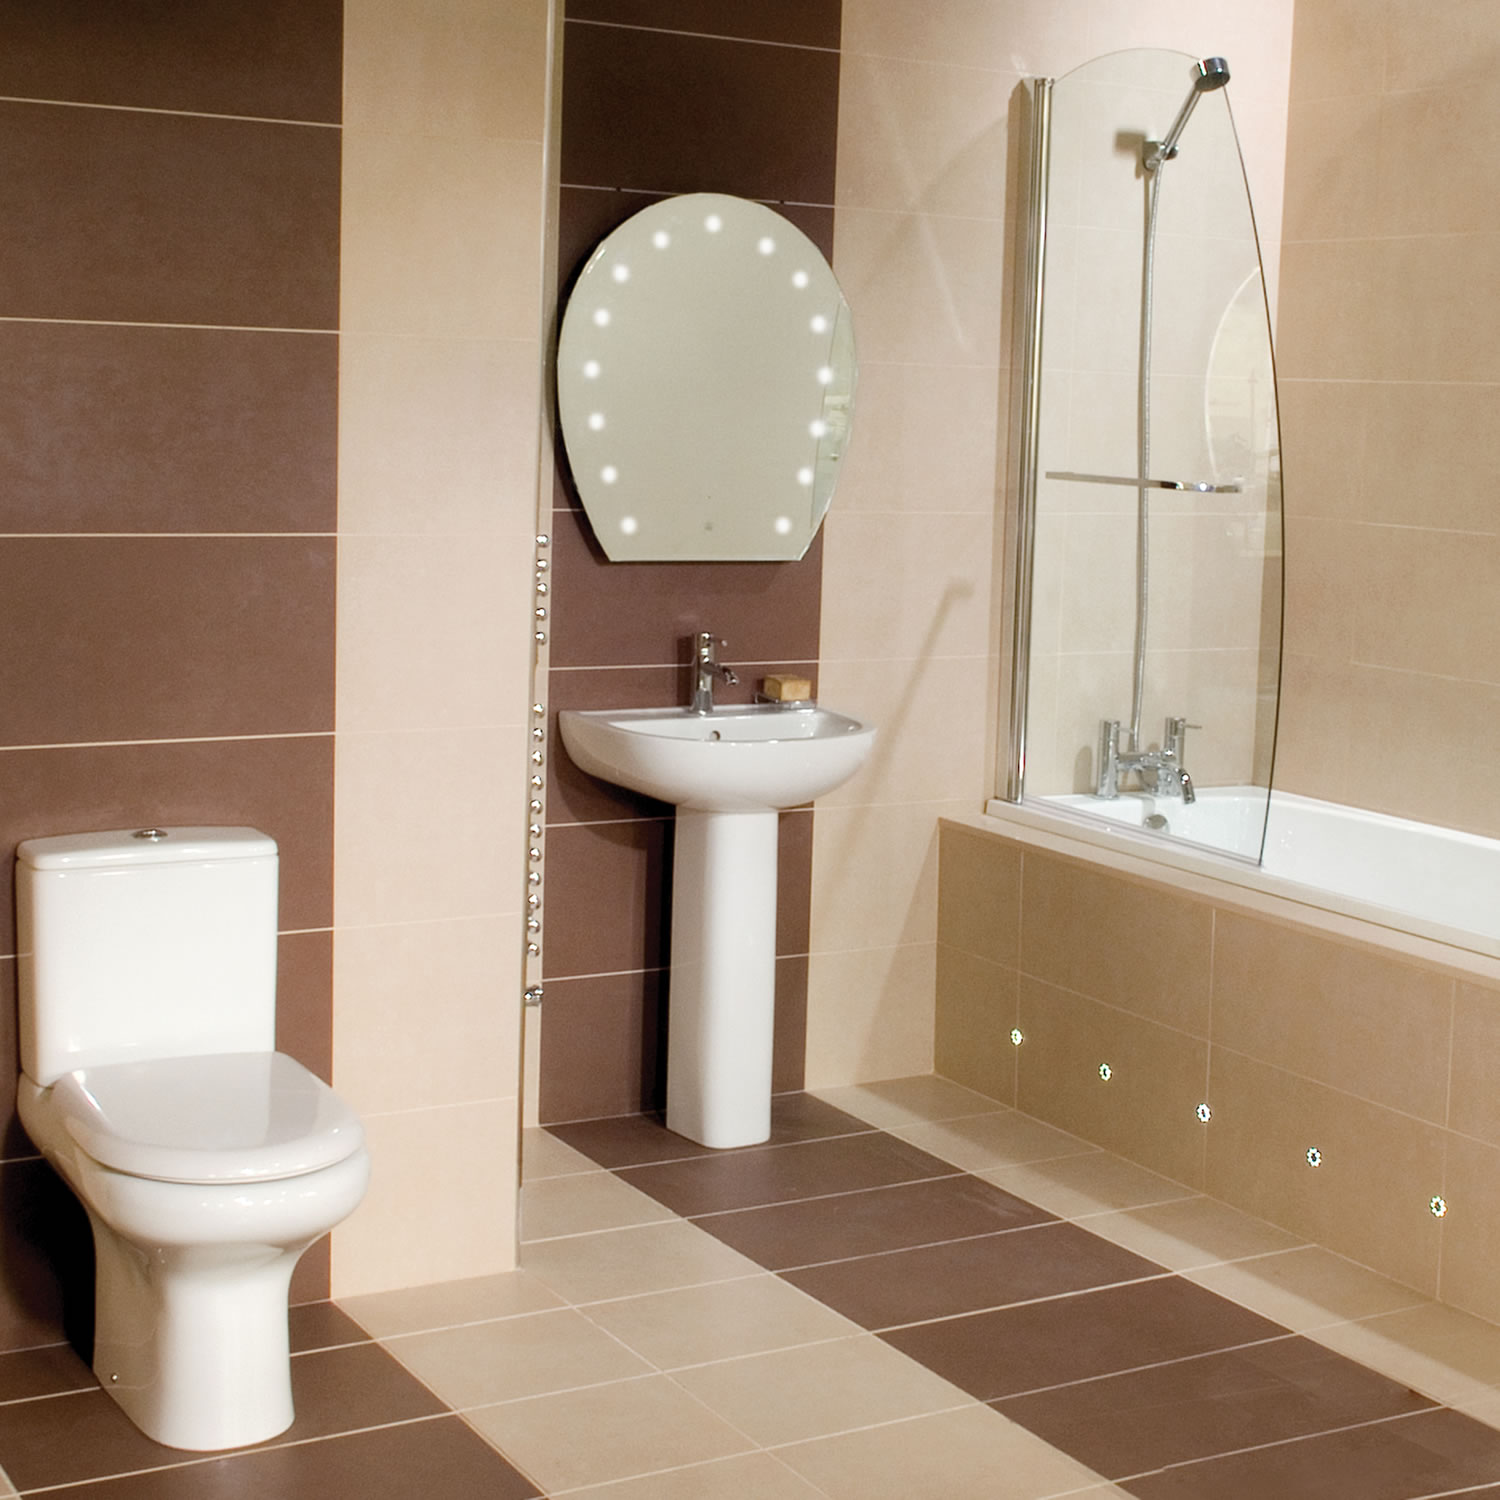 Compact Toilet and Sink 5858